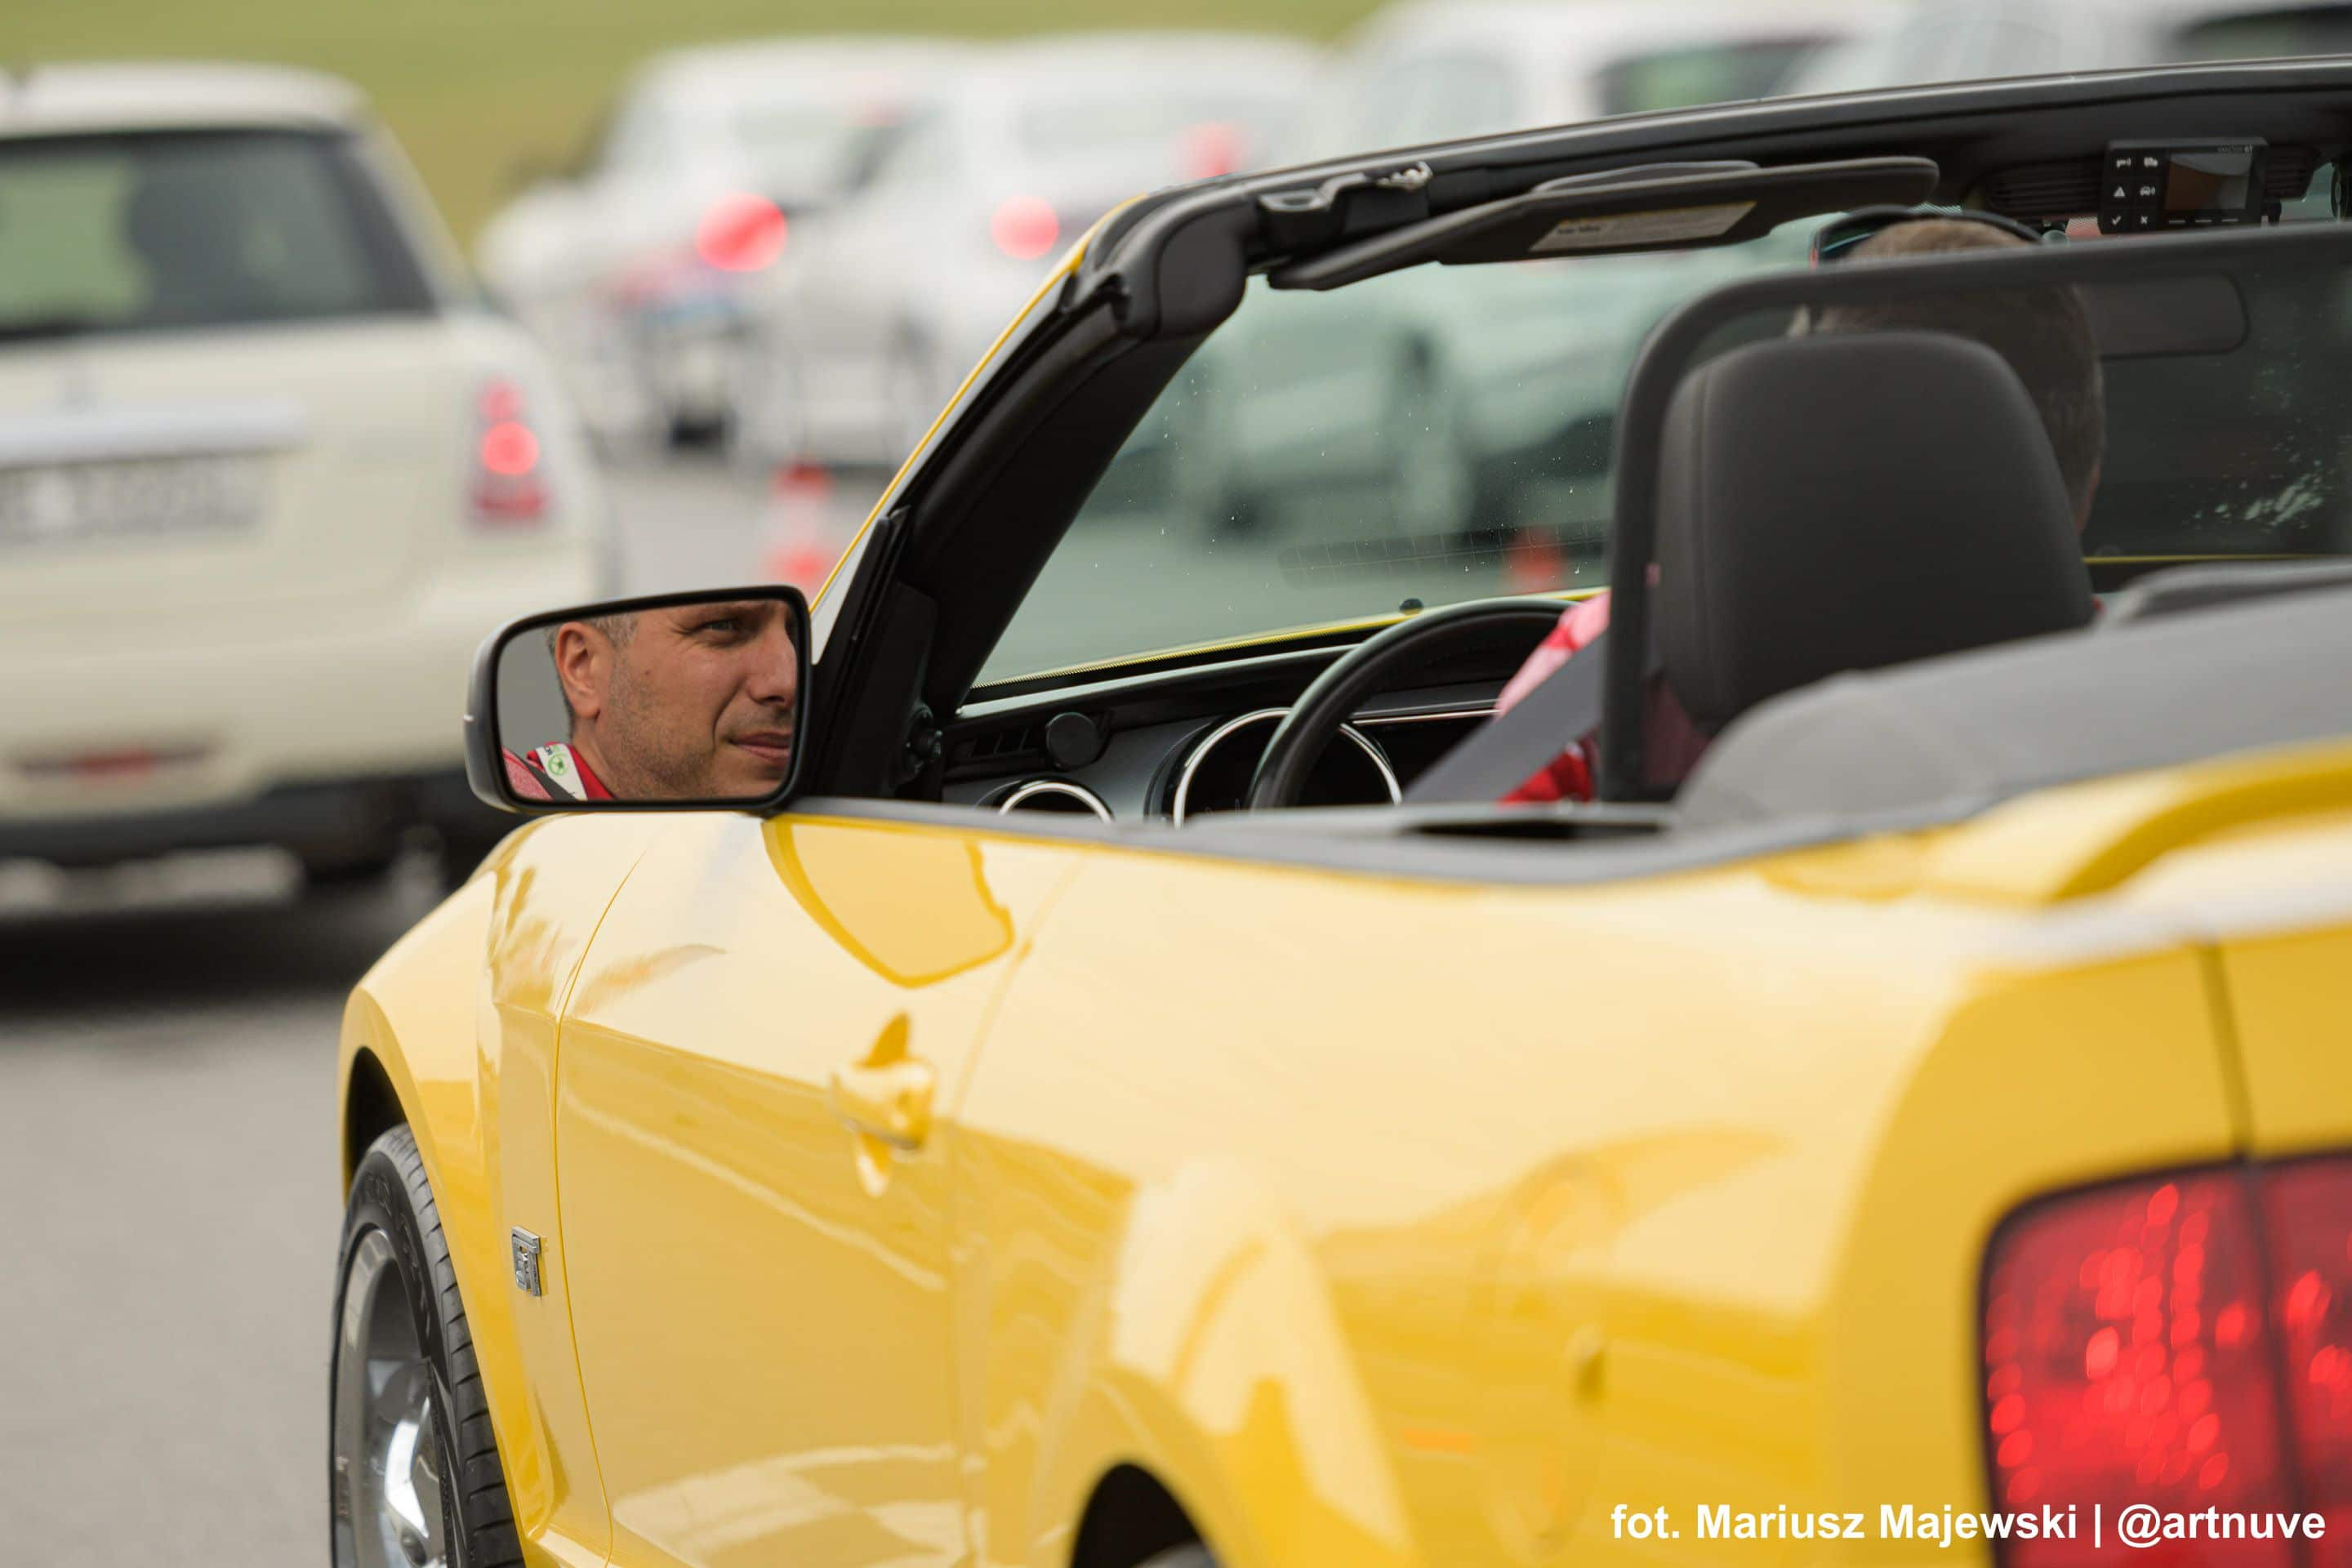 ford_mustang_na_torze_2